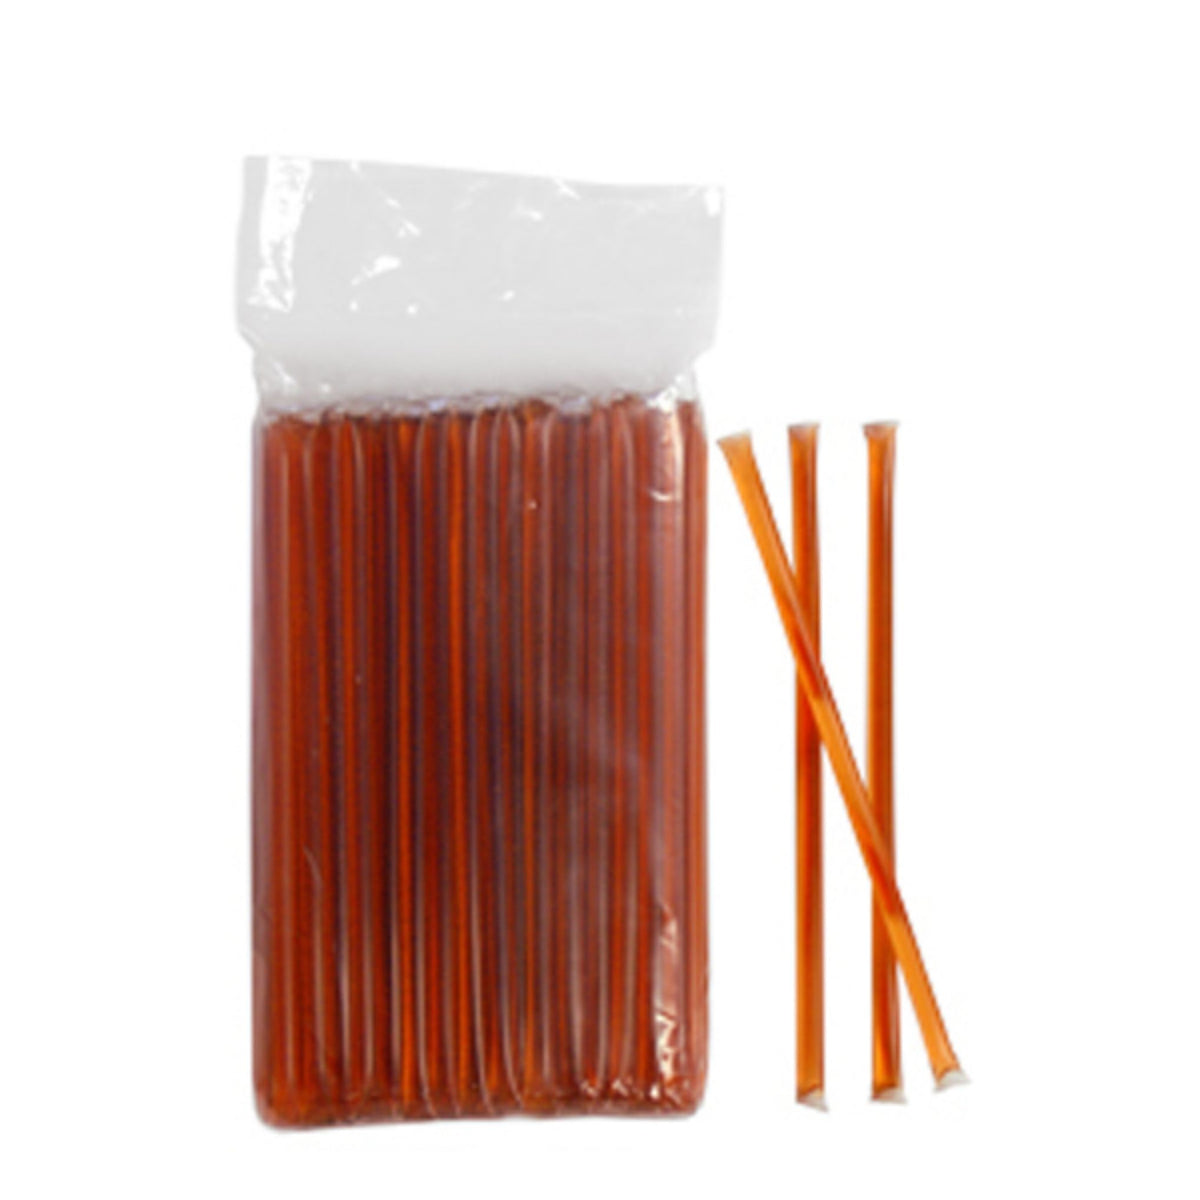 Anna's Sweet Cinnamon Flavored Honey Sticks in a Large Bulk Pack of 100